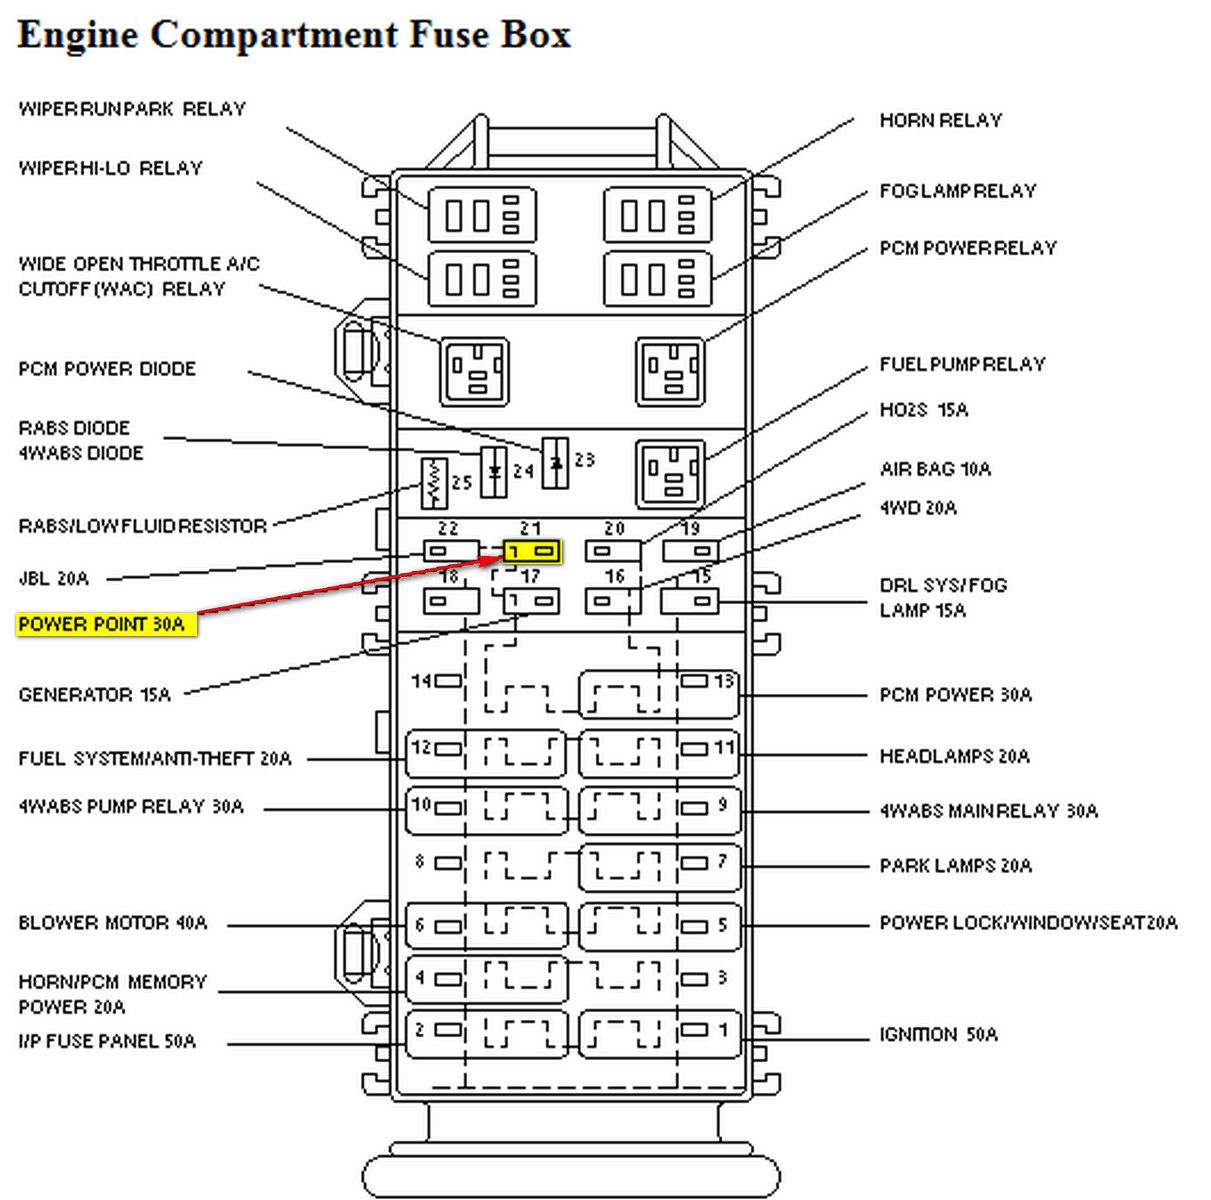 hight resolution of 1996 ford ranger fuse box diagram wiring diagram sheet2002 ford ranger fuse diagram 1997 ford ranger